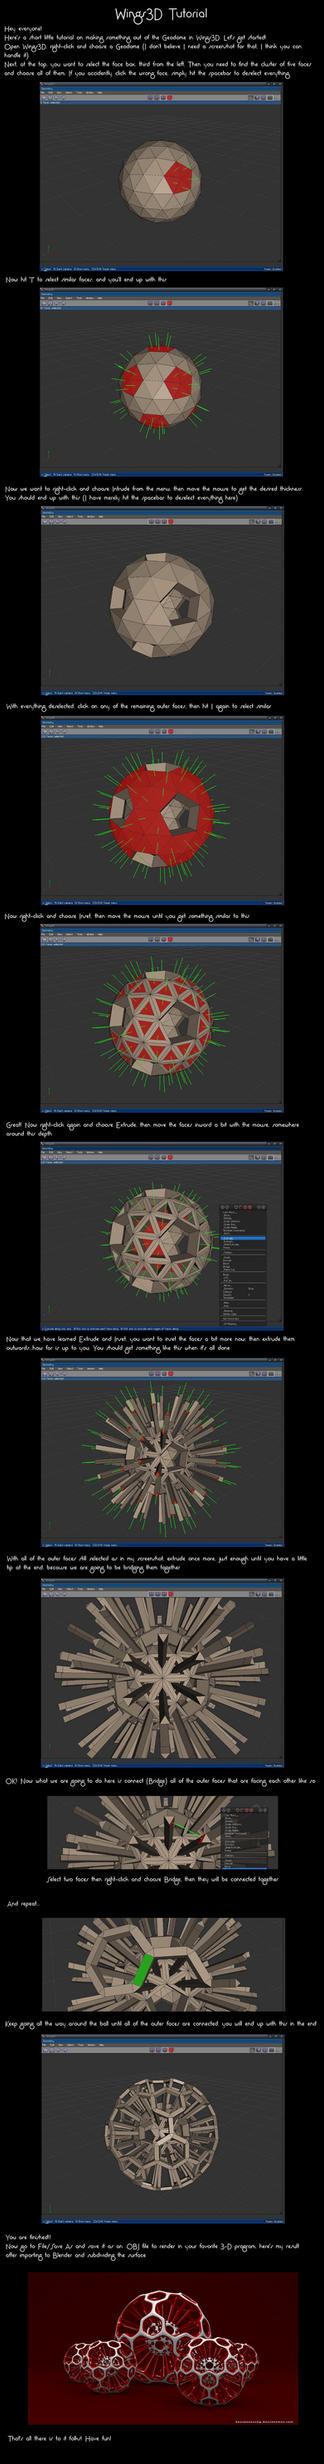 Wings3D Geodome Tutorial by VickyM72